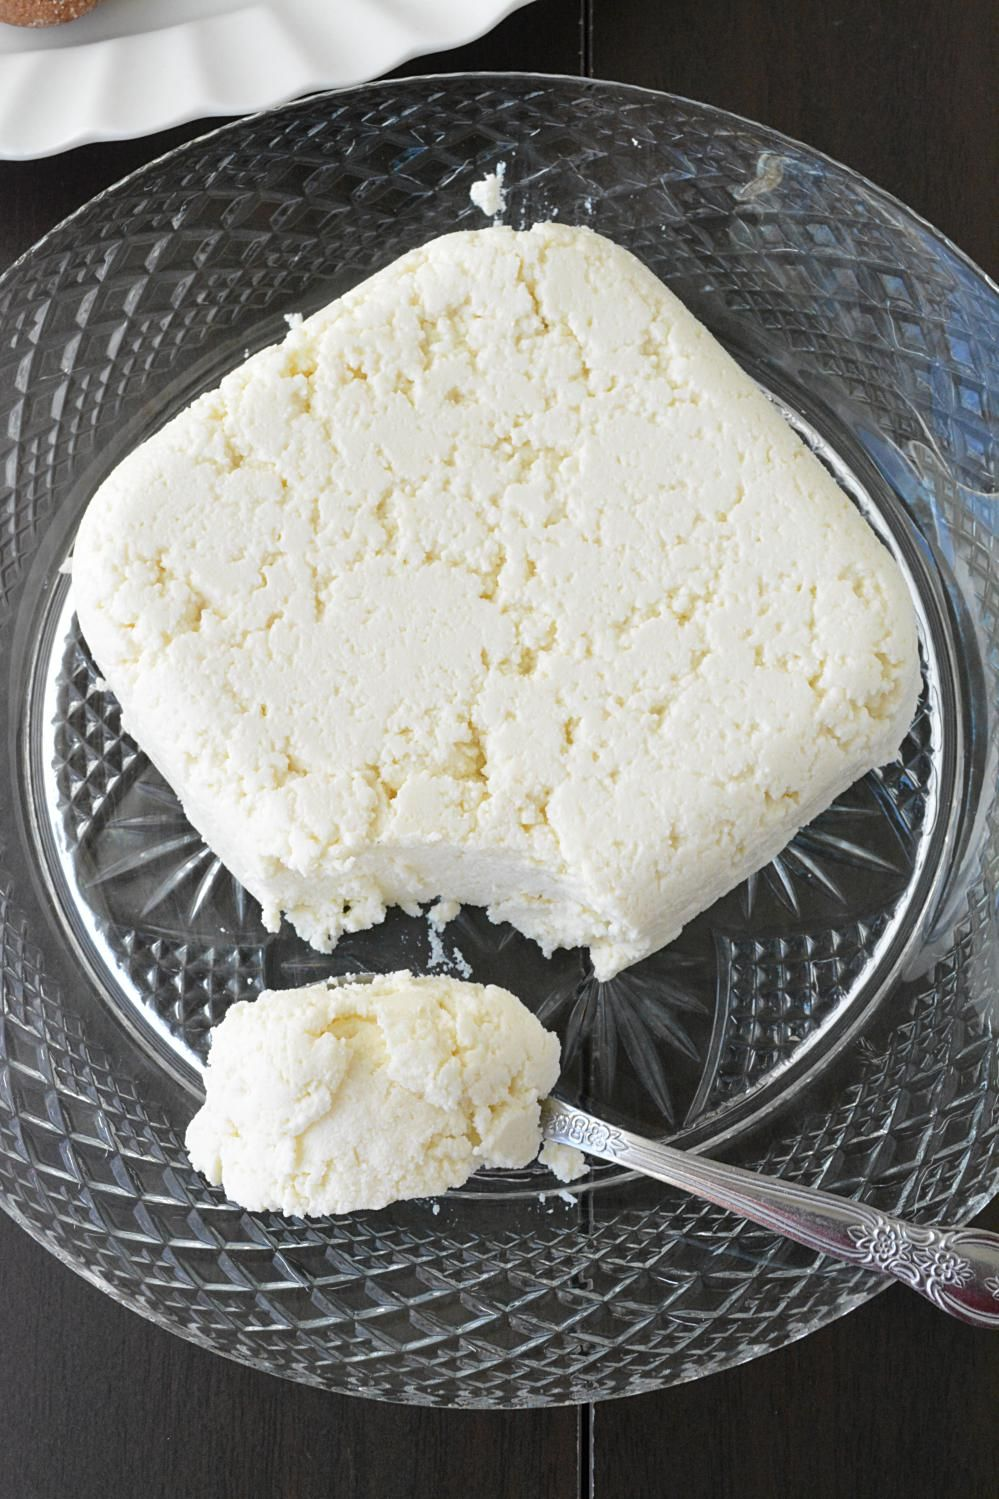 HOW TO MAKE MAWA FROM RICOTTA CHEESE IN MICROWAVE